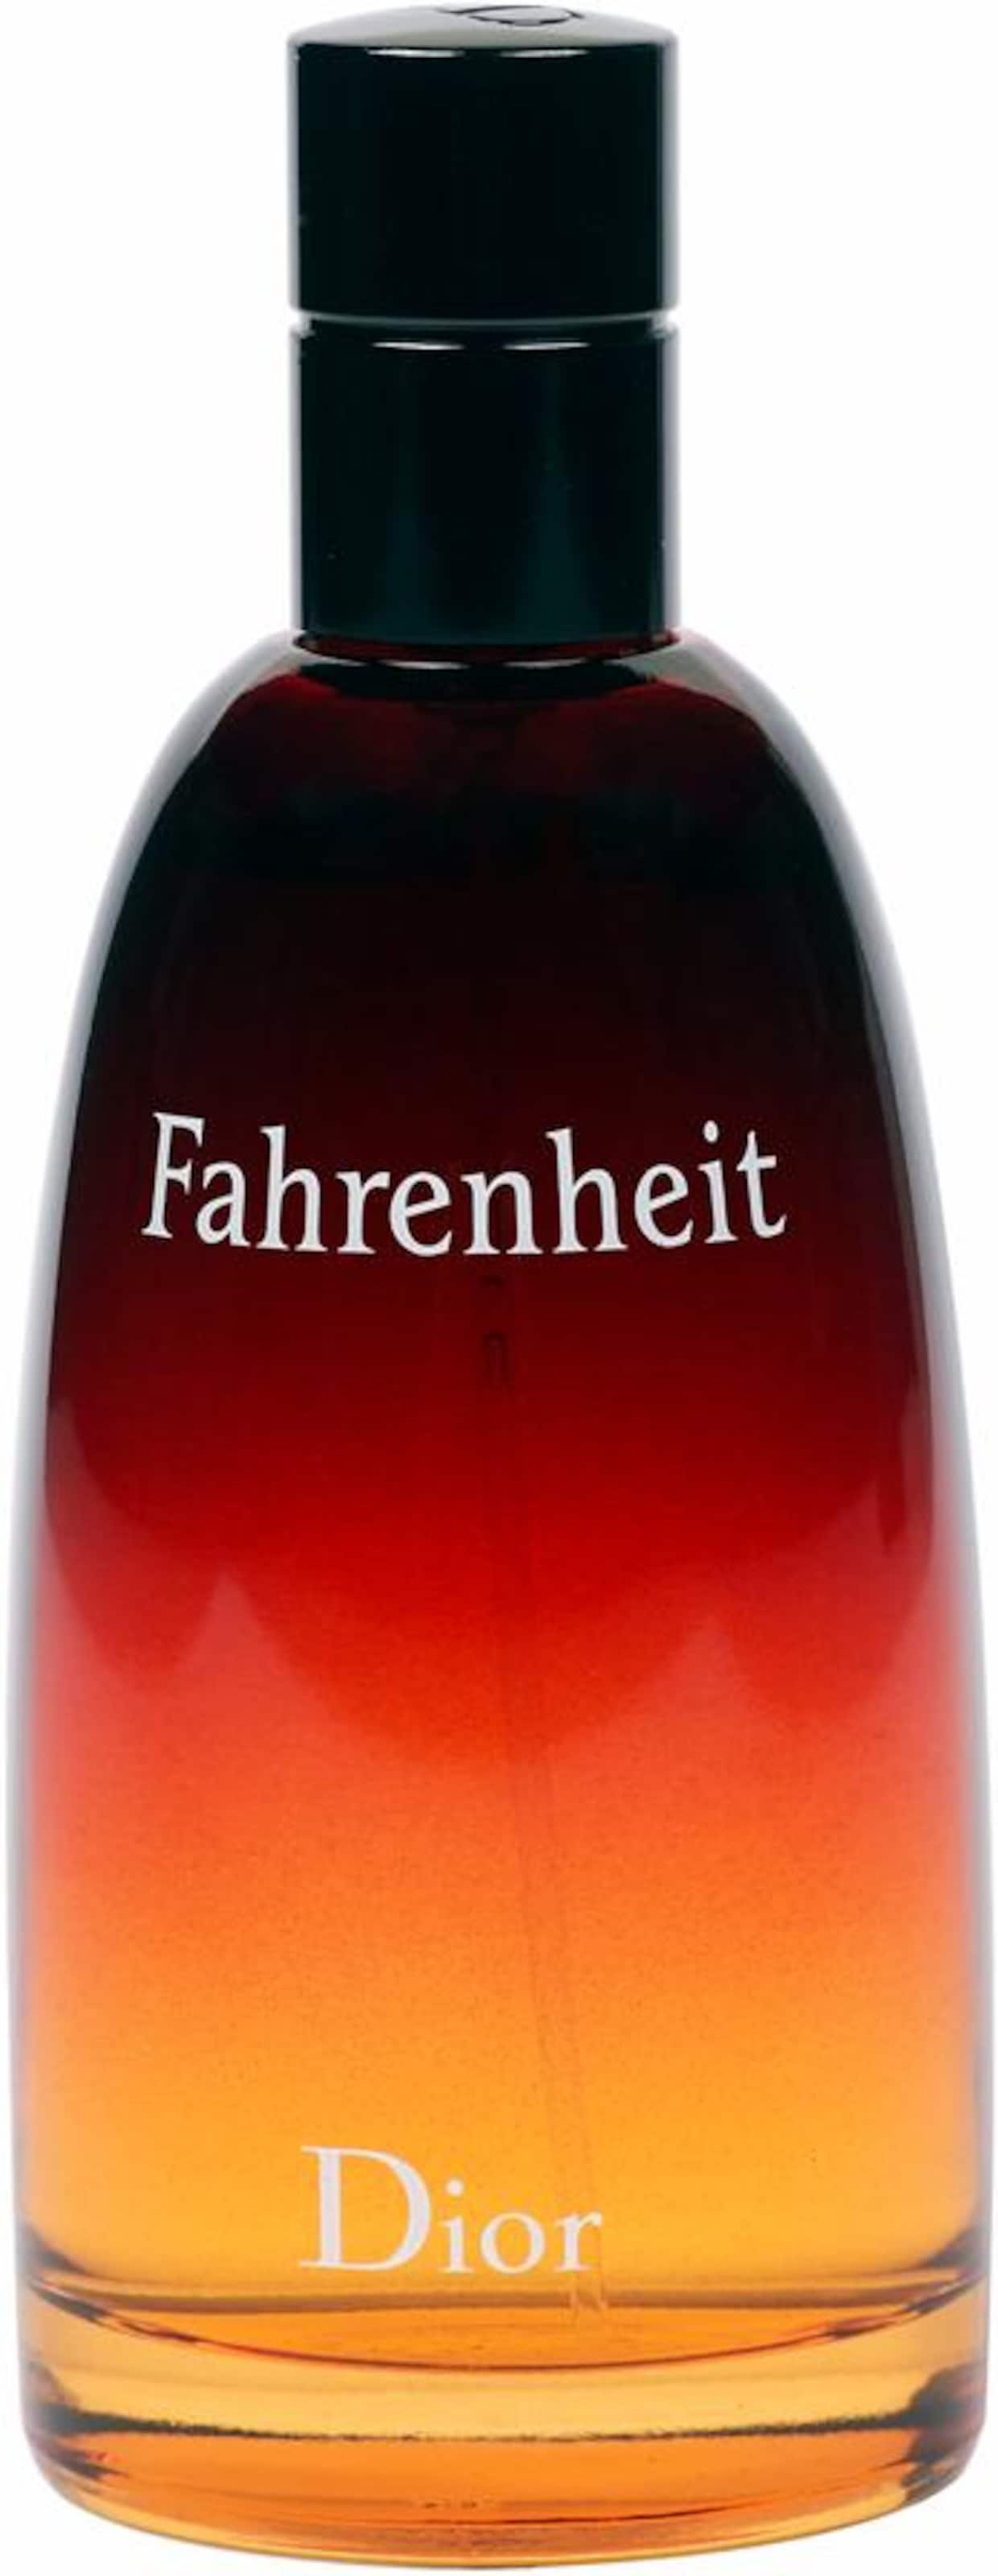 'fahrenheit' Aftershave Dunkelorange Dior In Aftershave Dior 8wnOk0PX